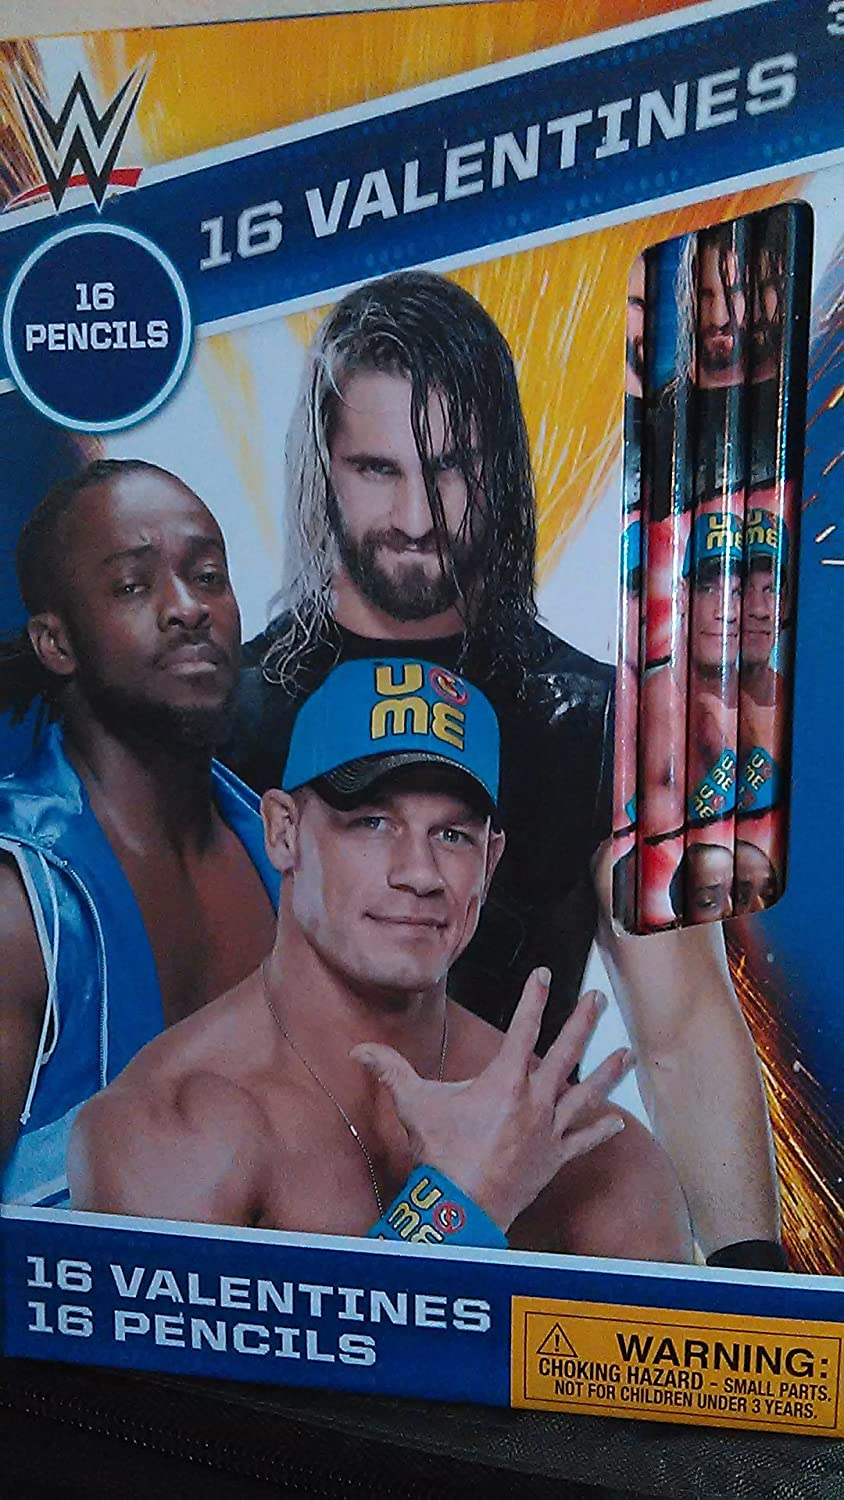 Amazon Wwe Wrestling Valentines Card Bundle 16 Cards With 16